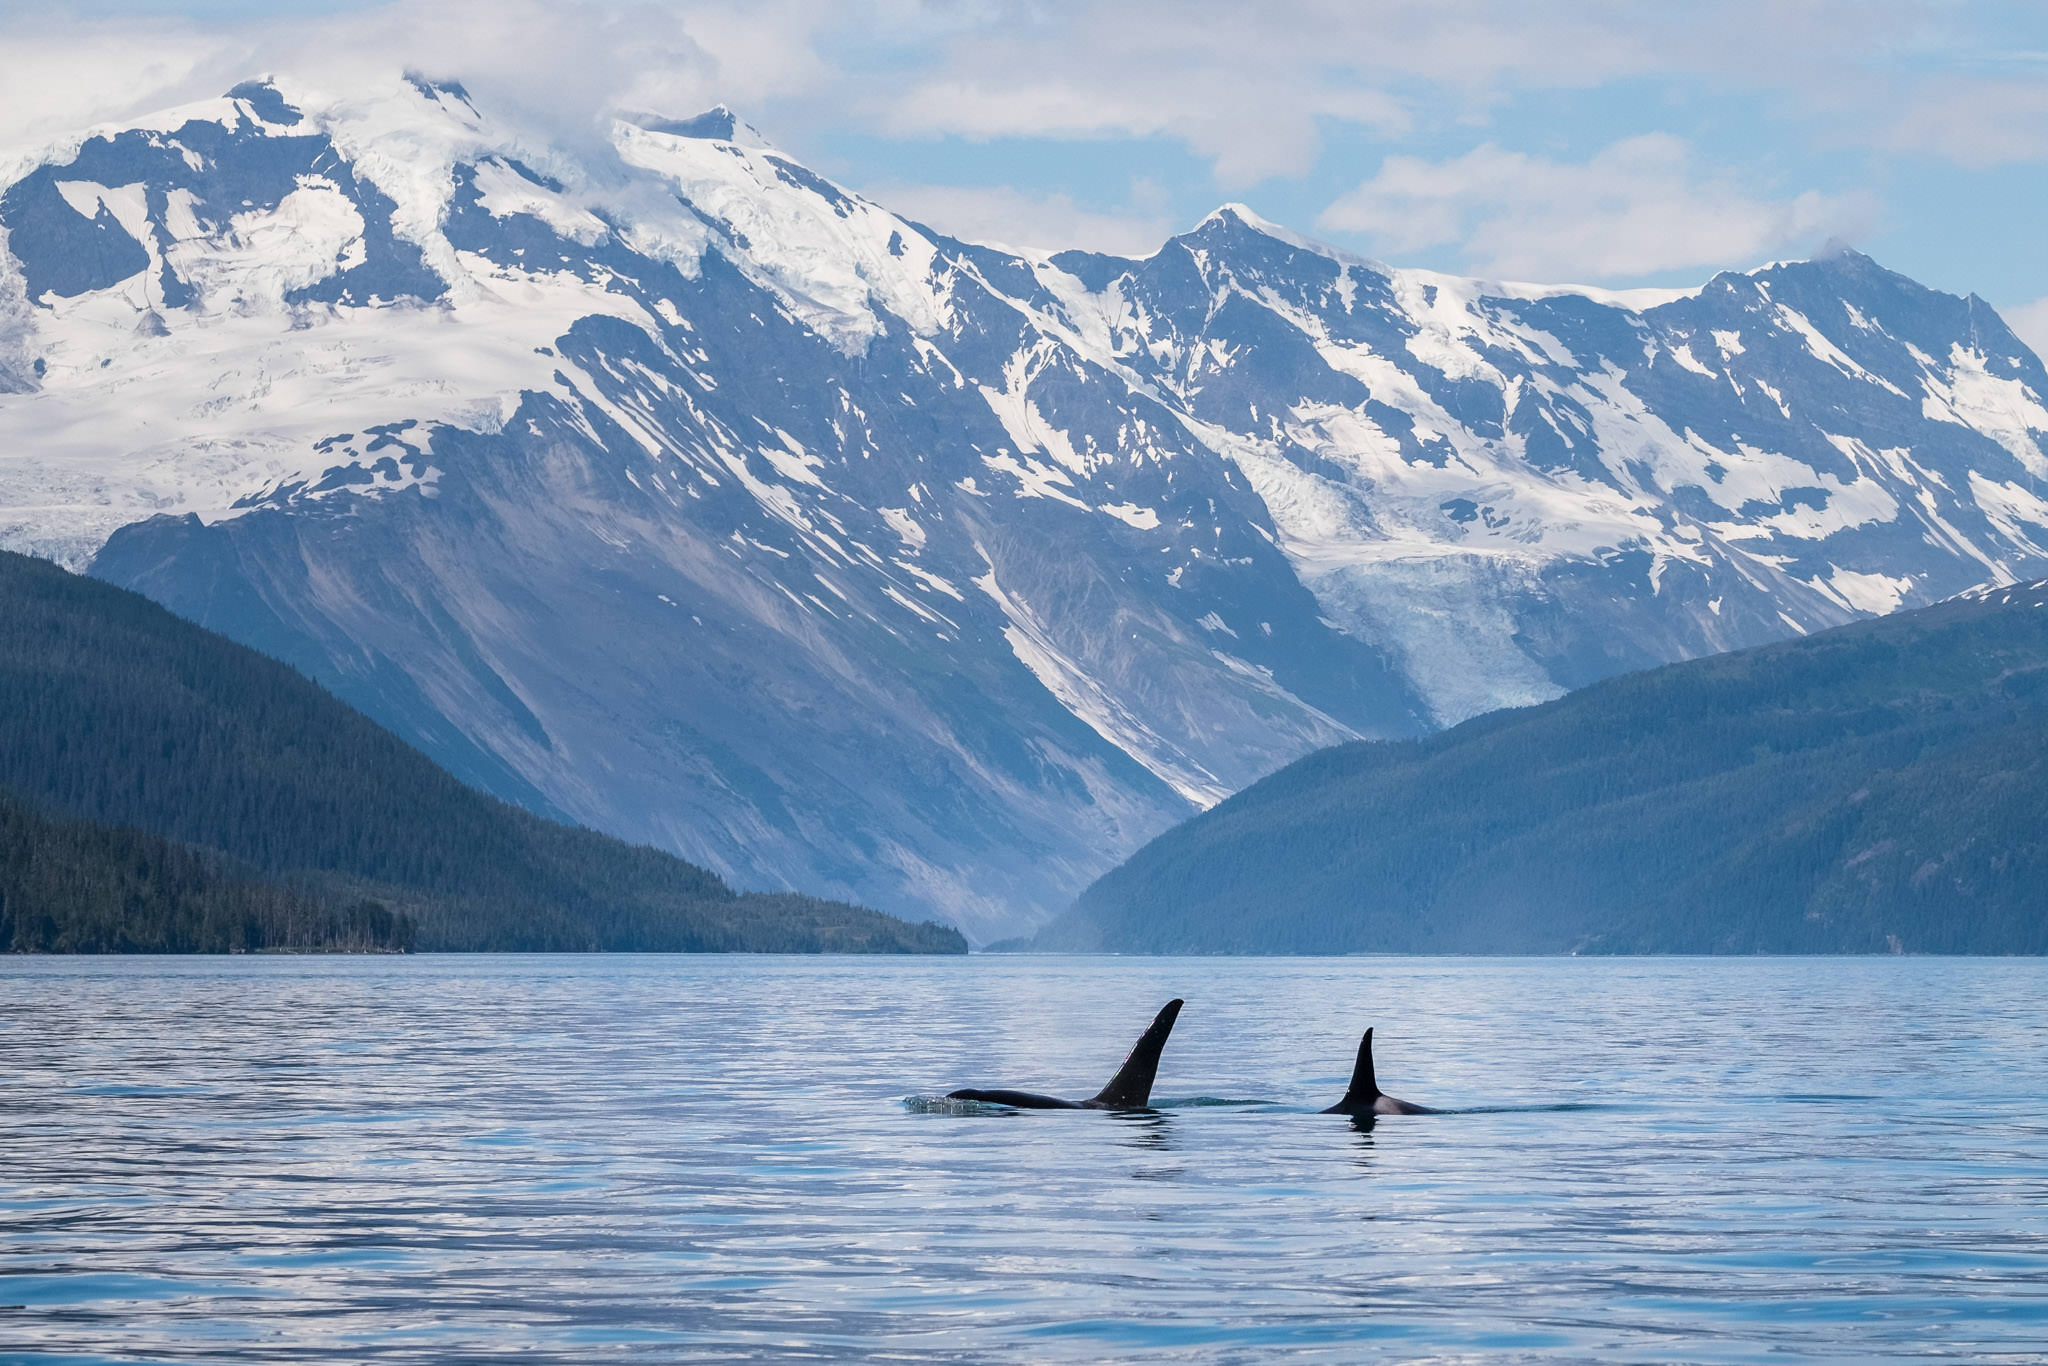 PRINCE WILLIAM SOUND:  Kayakers sit spellbound as they witness orcas slicing still ocean waters. Towering blue-white glaciers slowly grind to the sea. The rugged lands and water of the Sound challenge both spirit and body. This location will be a perfect source of musical inspiration.